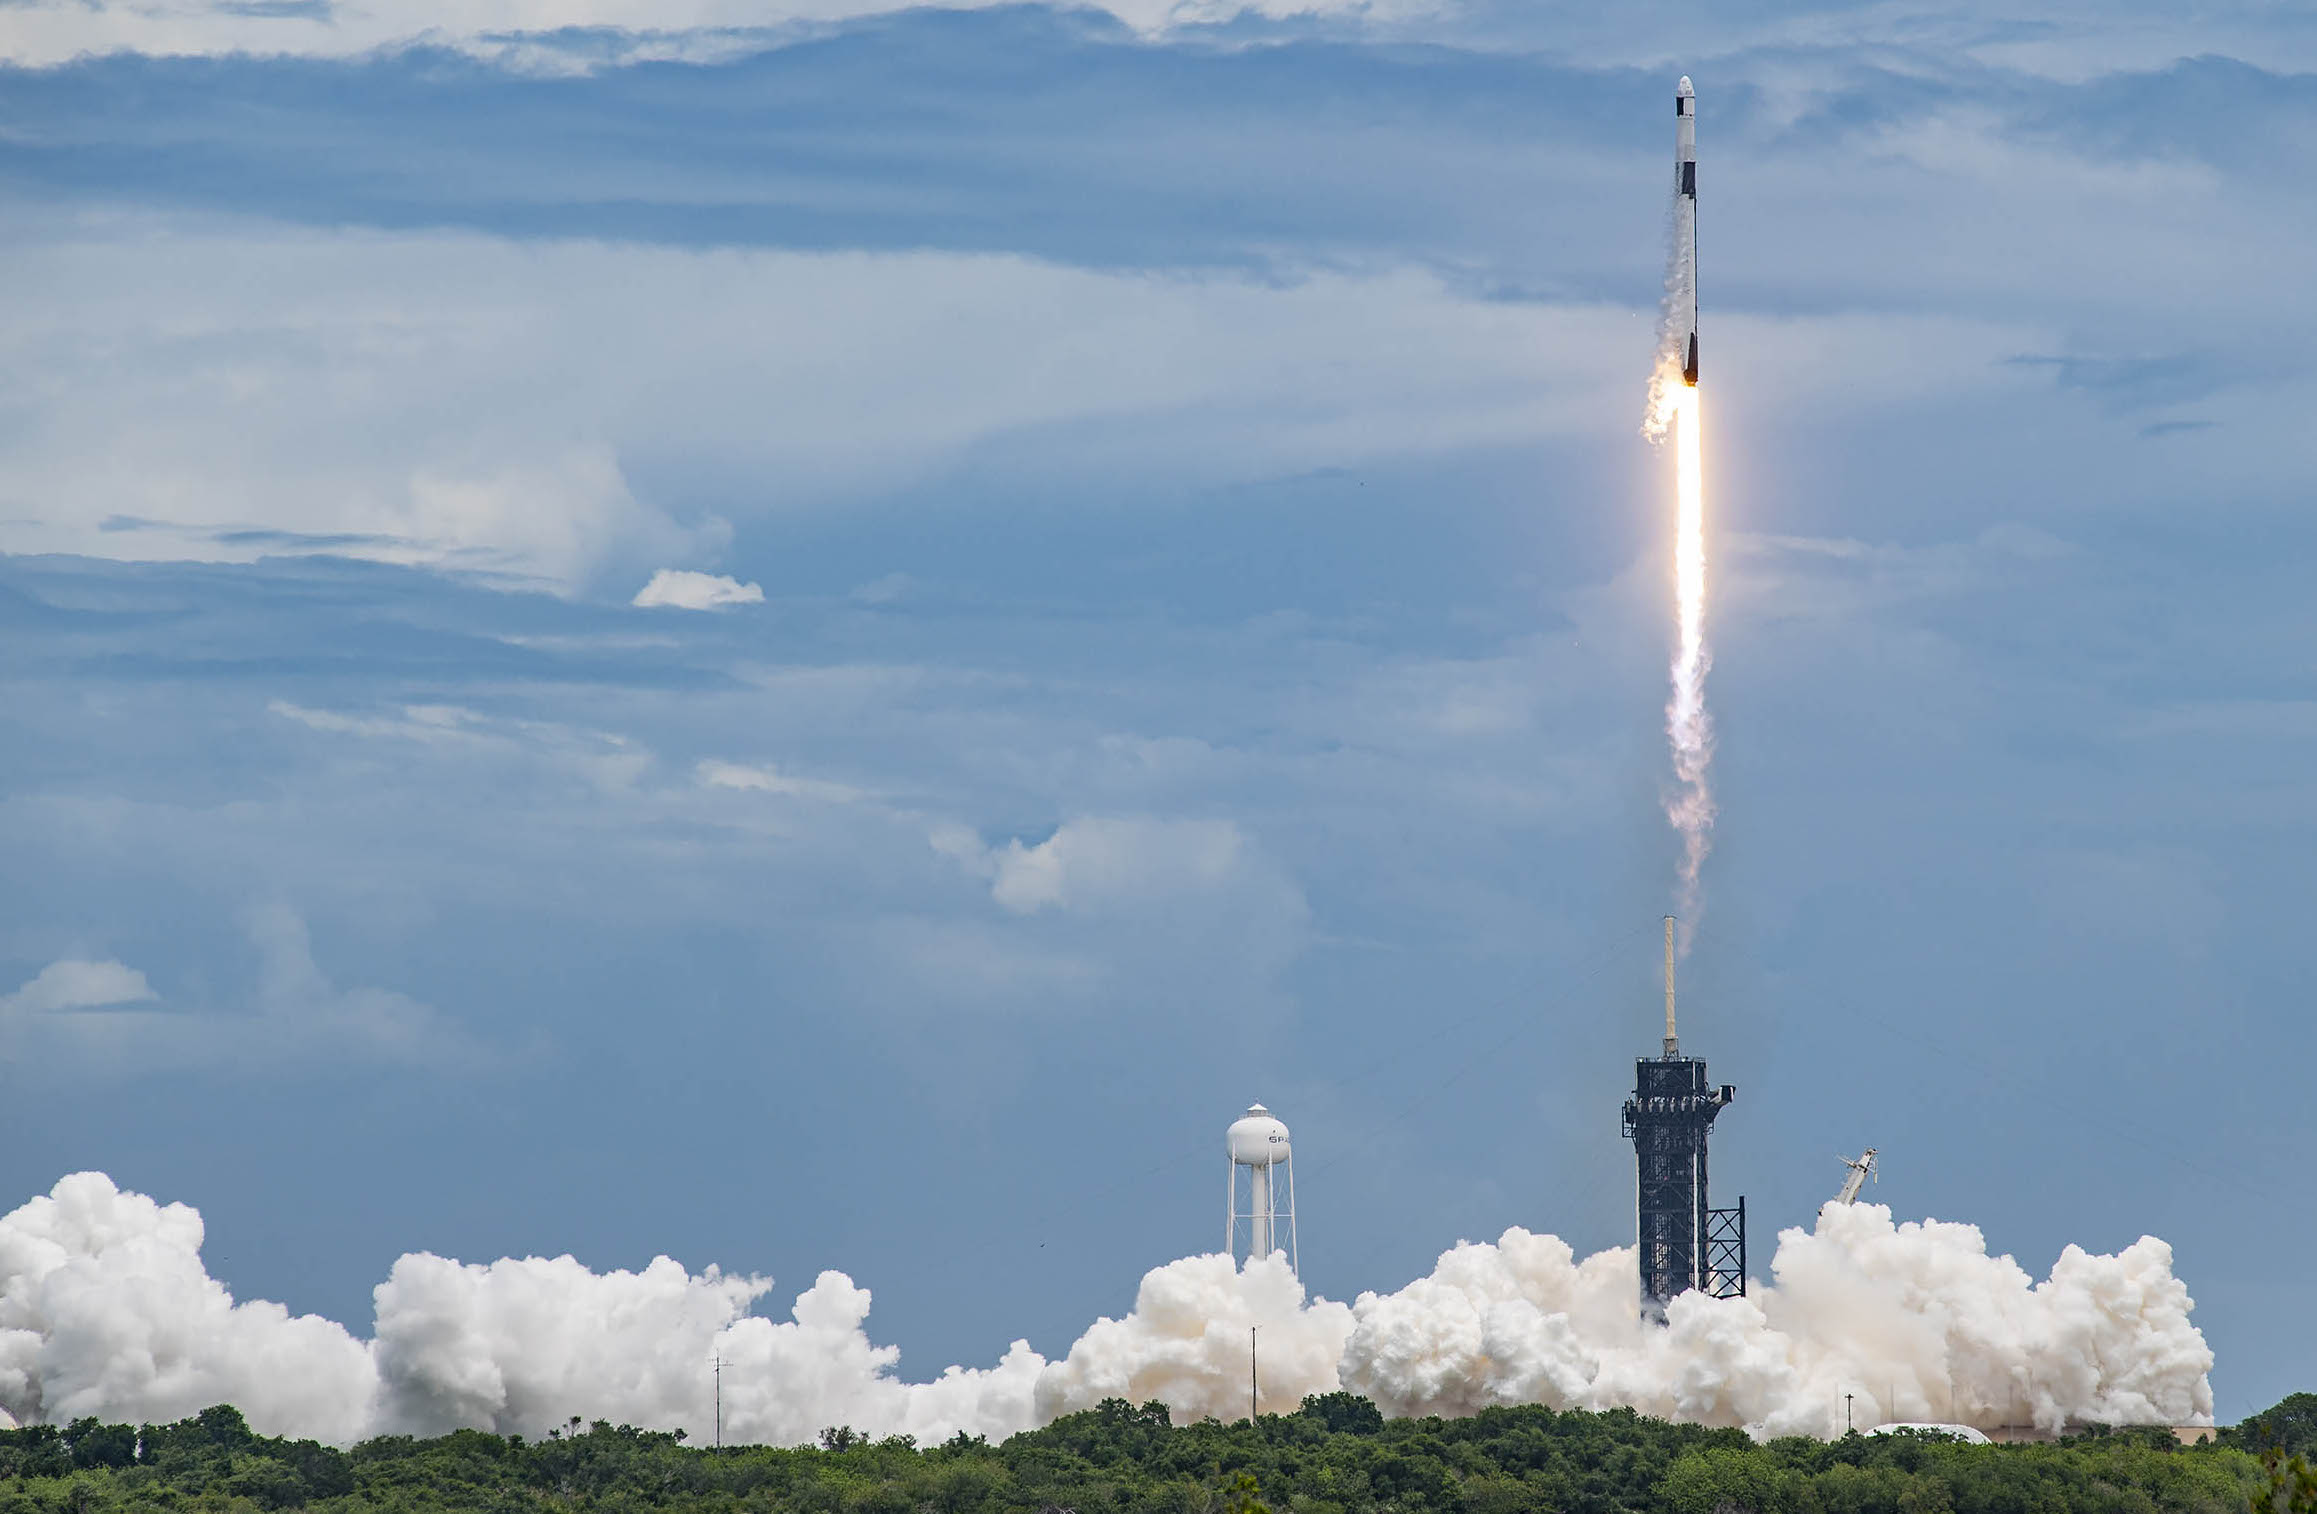 The Billionaire Race Deflects What Space Exploration Really Should Be About